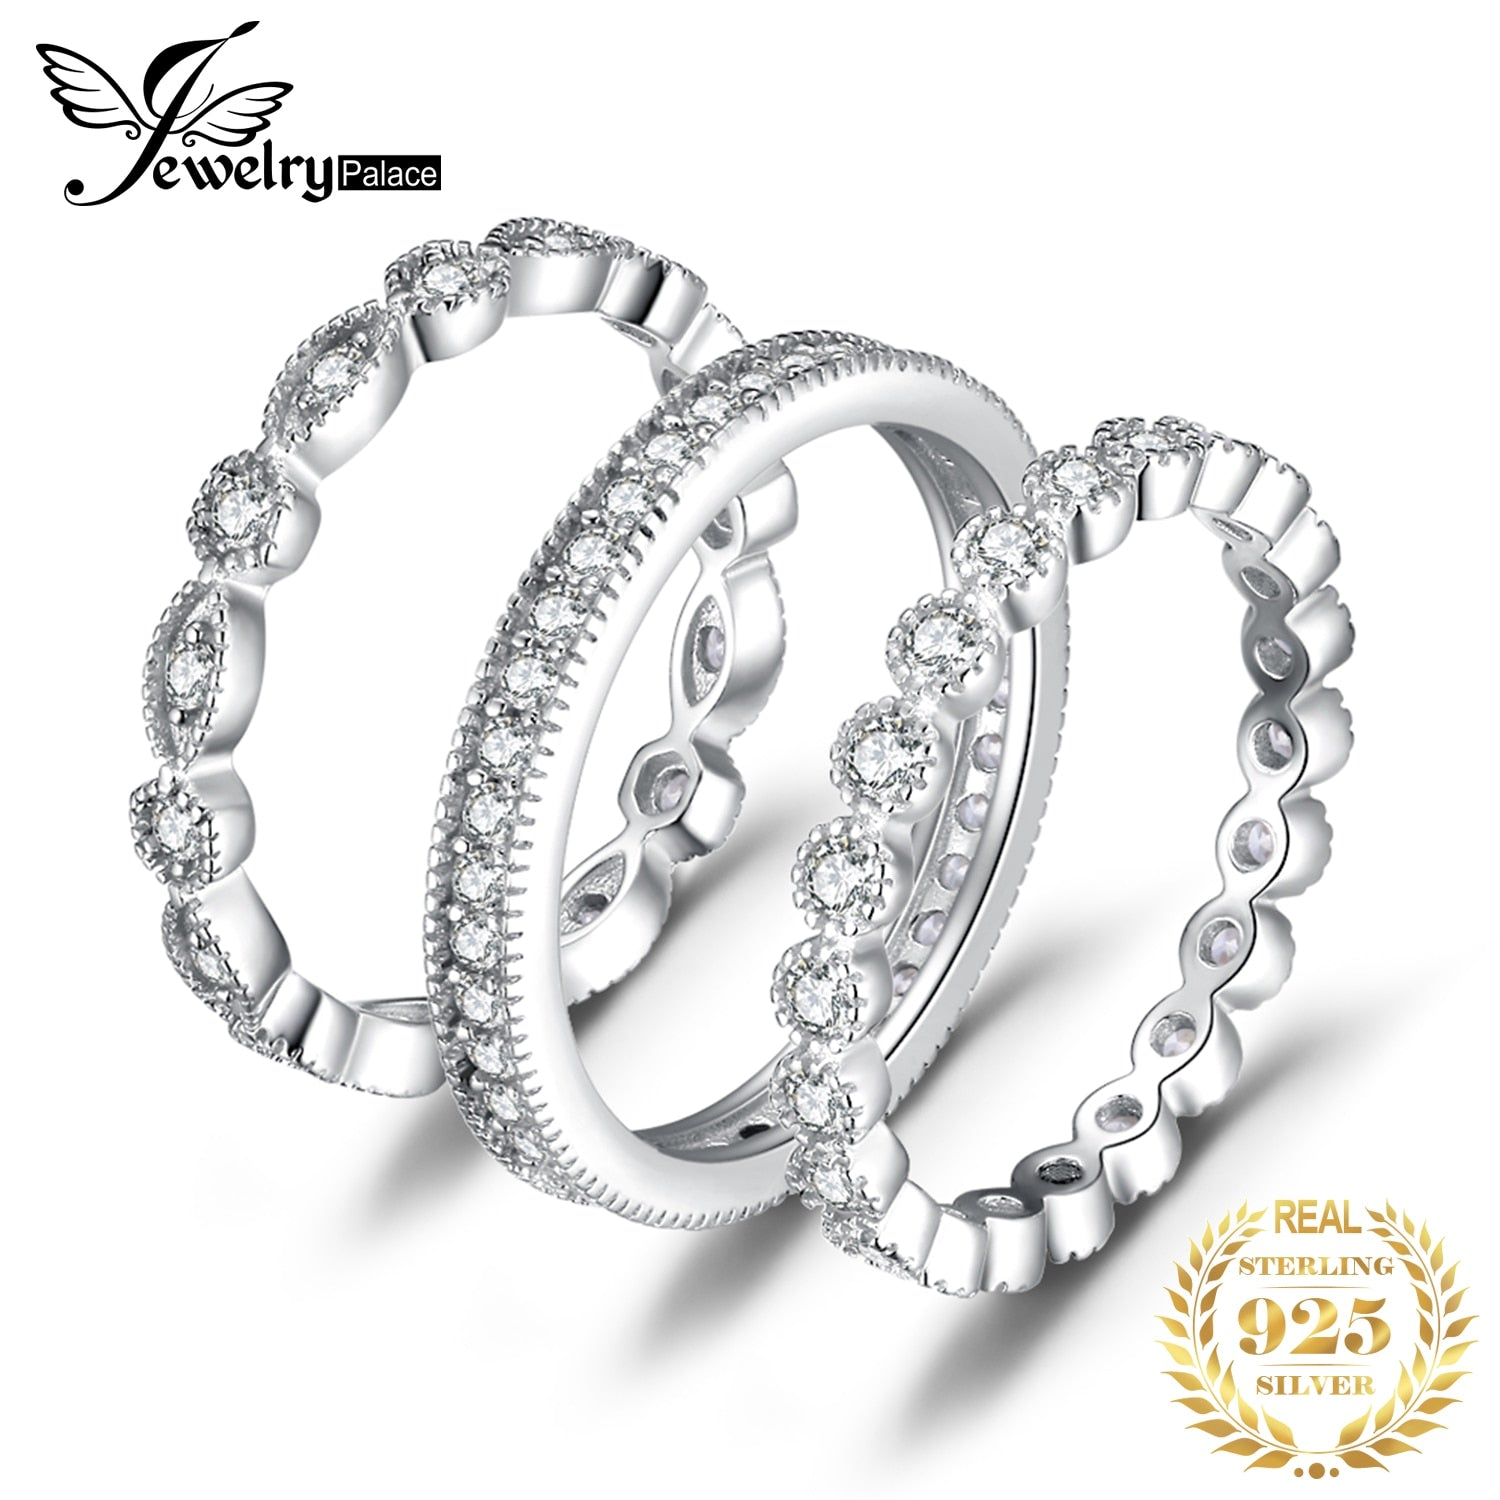 Jpalace Wedding Rings Sets 925 Sterling Silver Rings for Women Anniversary Eternity Stackable Band Ring Set Silver 925 Jewelry - My Accessory